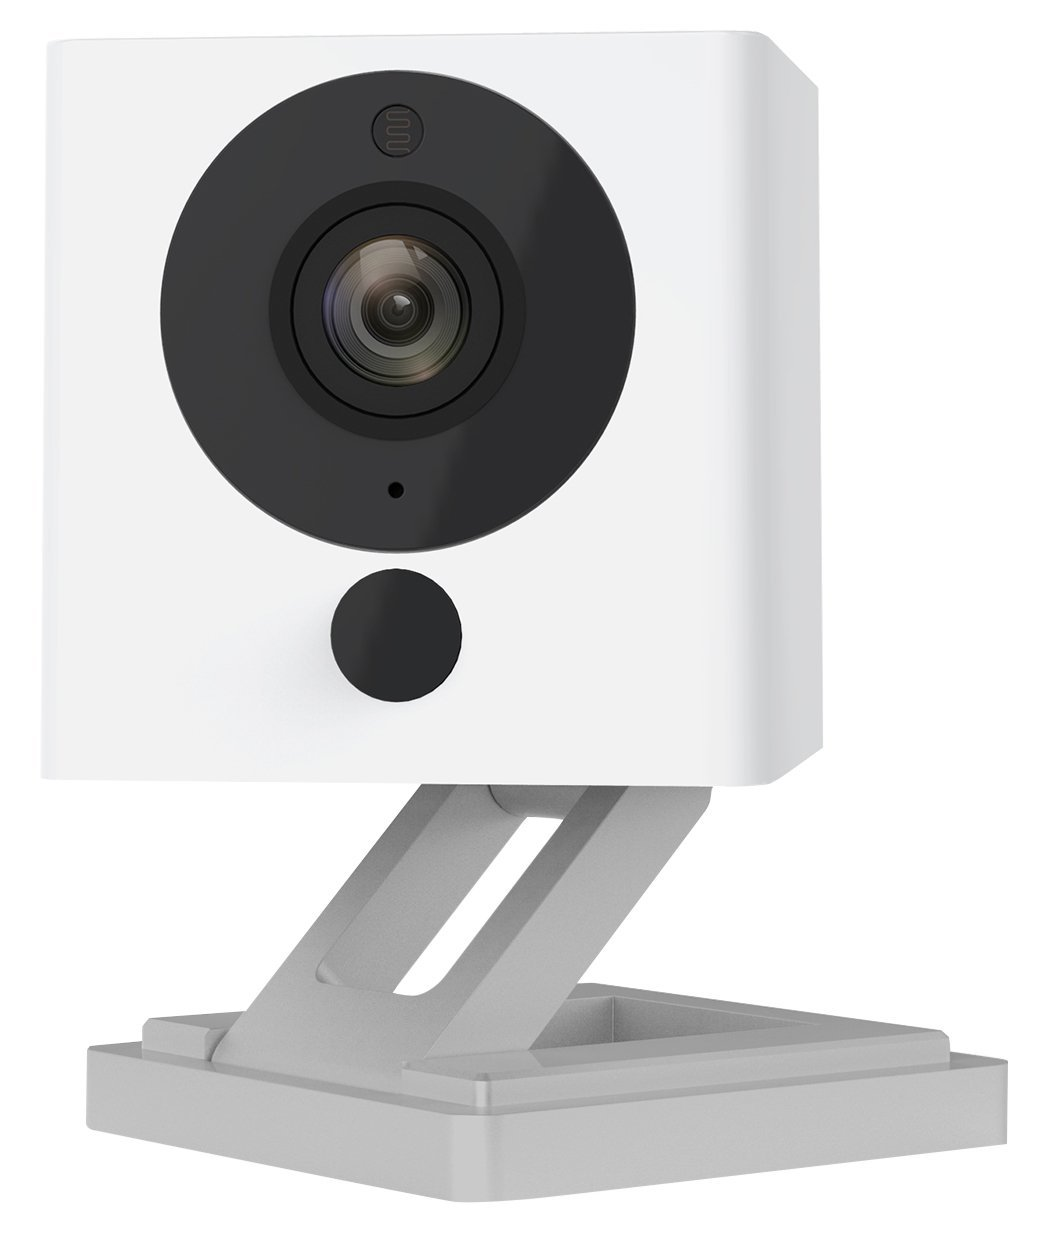 wyze security camera amazon